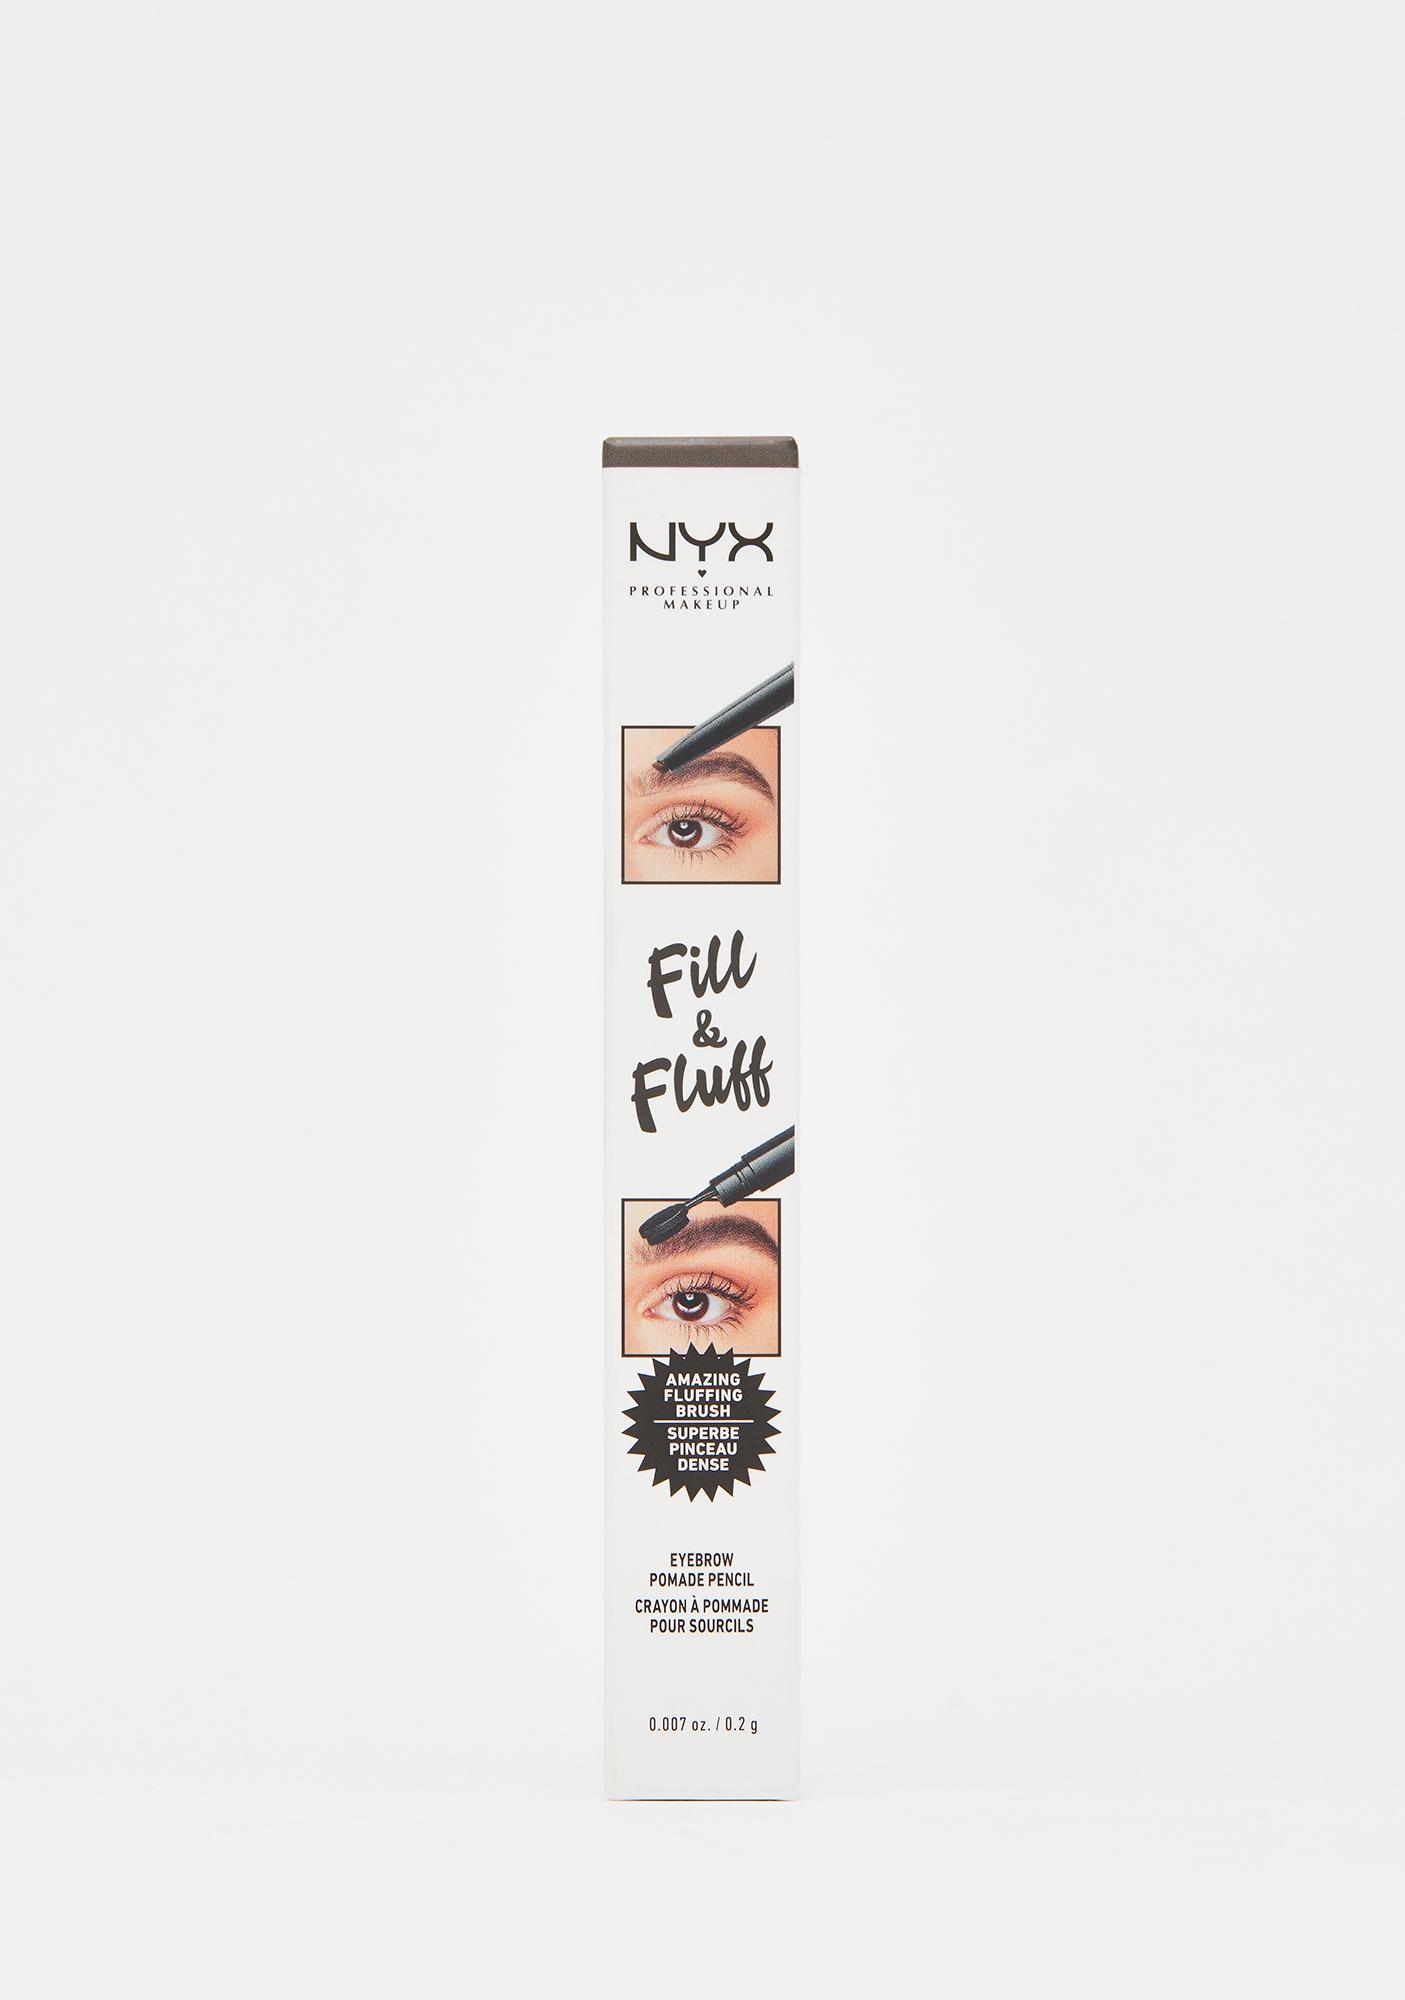 NYX Professional Makeup Ash Brown Fill & Fluff Eyebrow Pomade Pencil